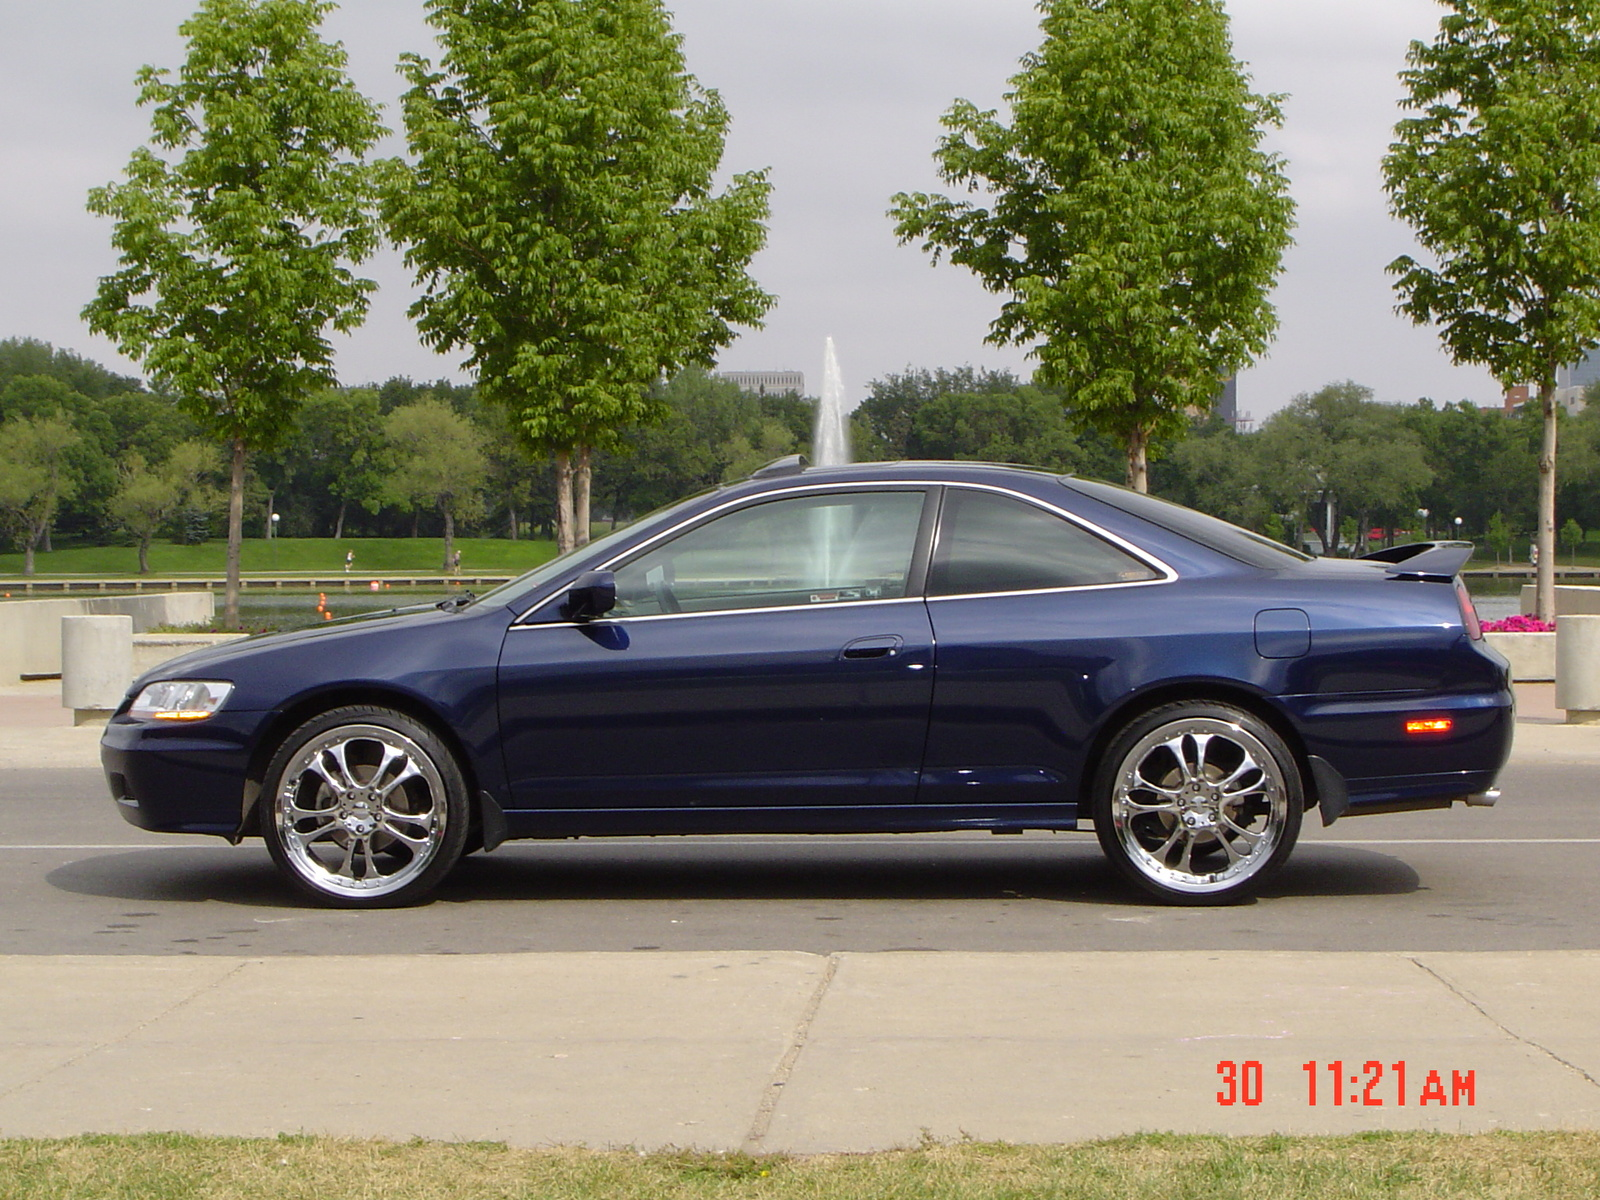 2001 Honda Accord EX V6 Coupe picture, exterior